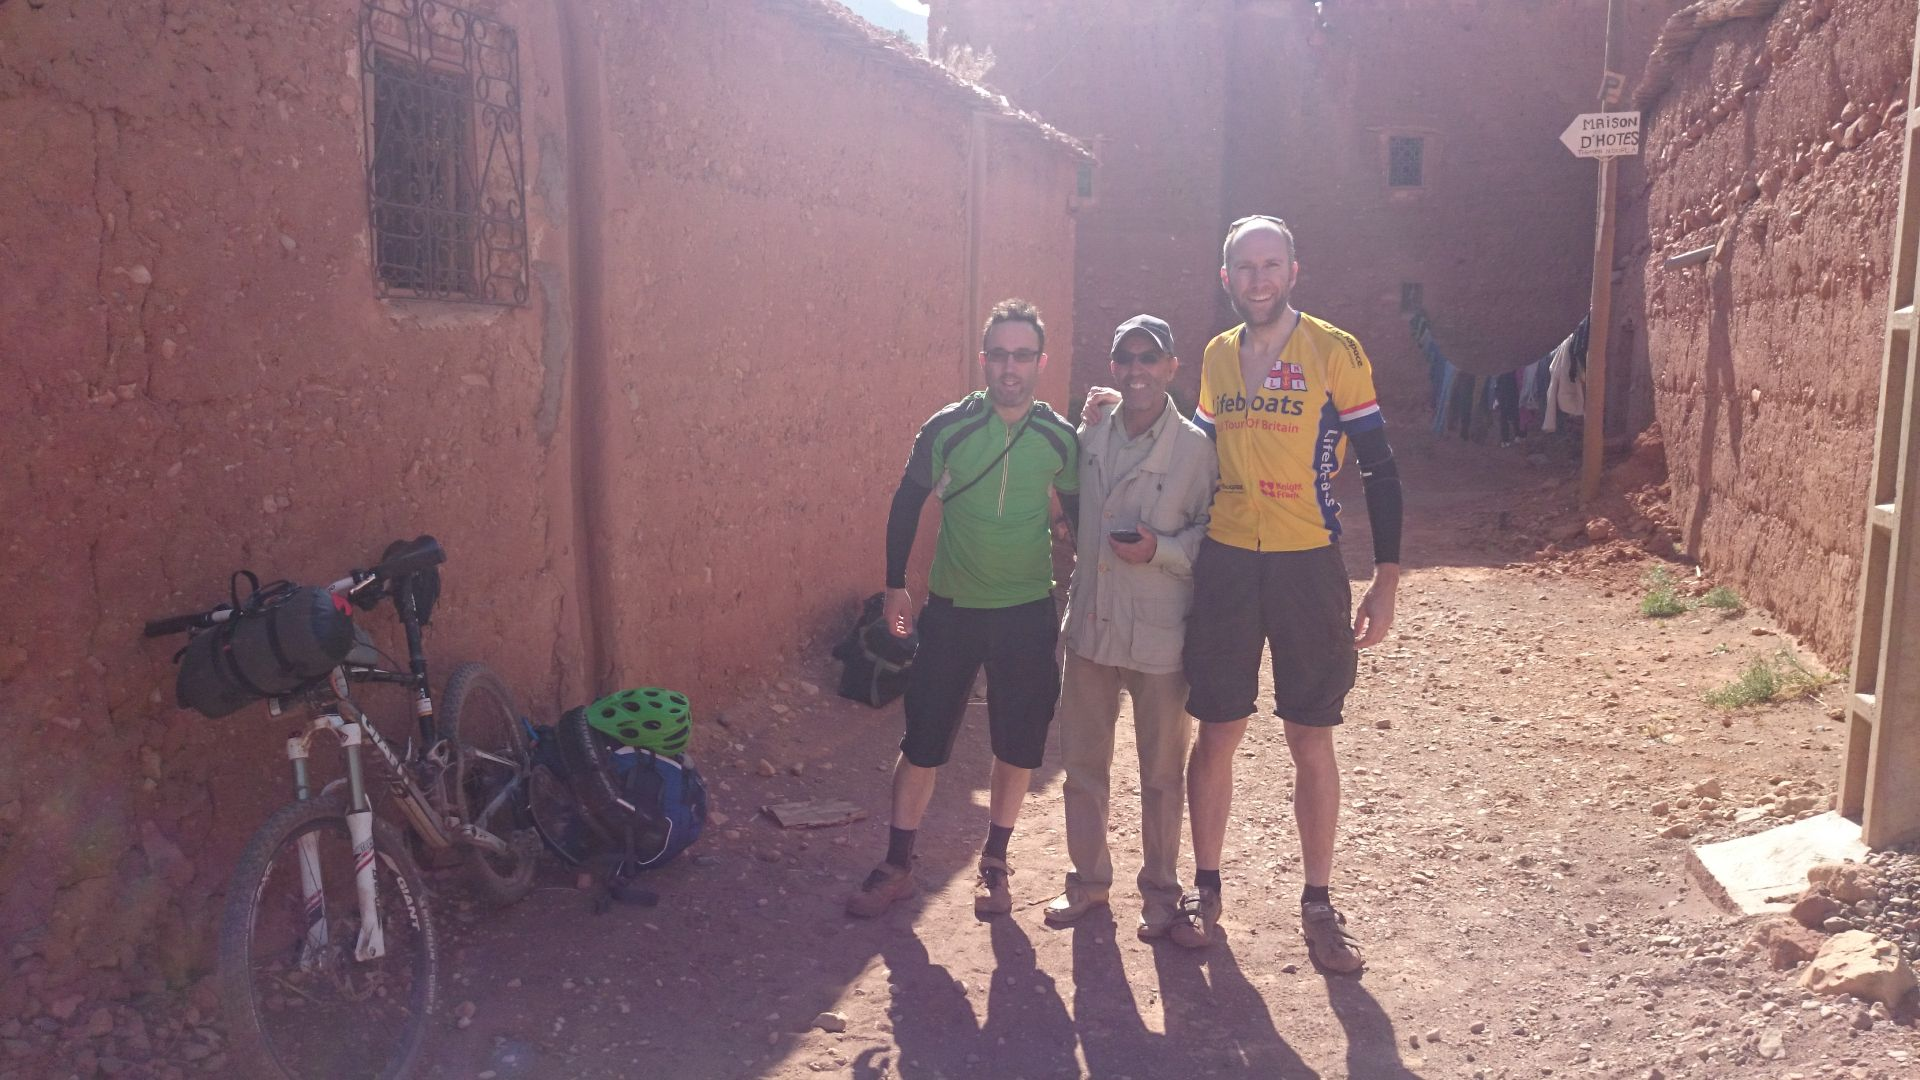 Transfer Day B - Thank you so much for your wonderful hospitality, Hussein. Our host at Kasbah Tigmi-n-Oufella, Anguelz